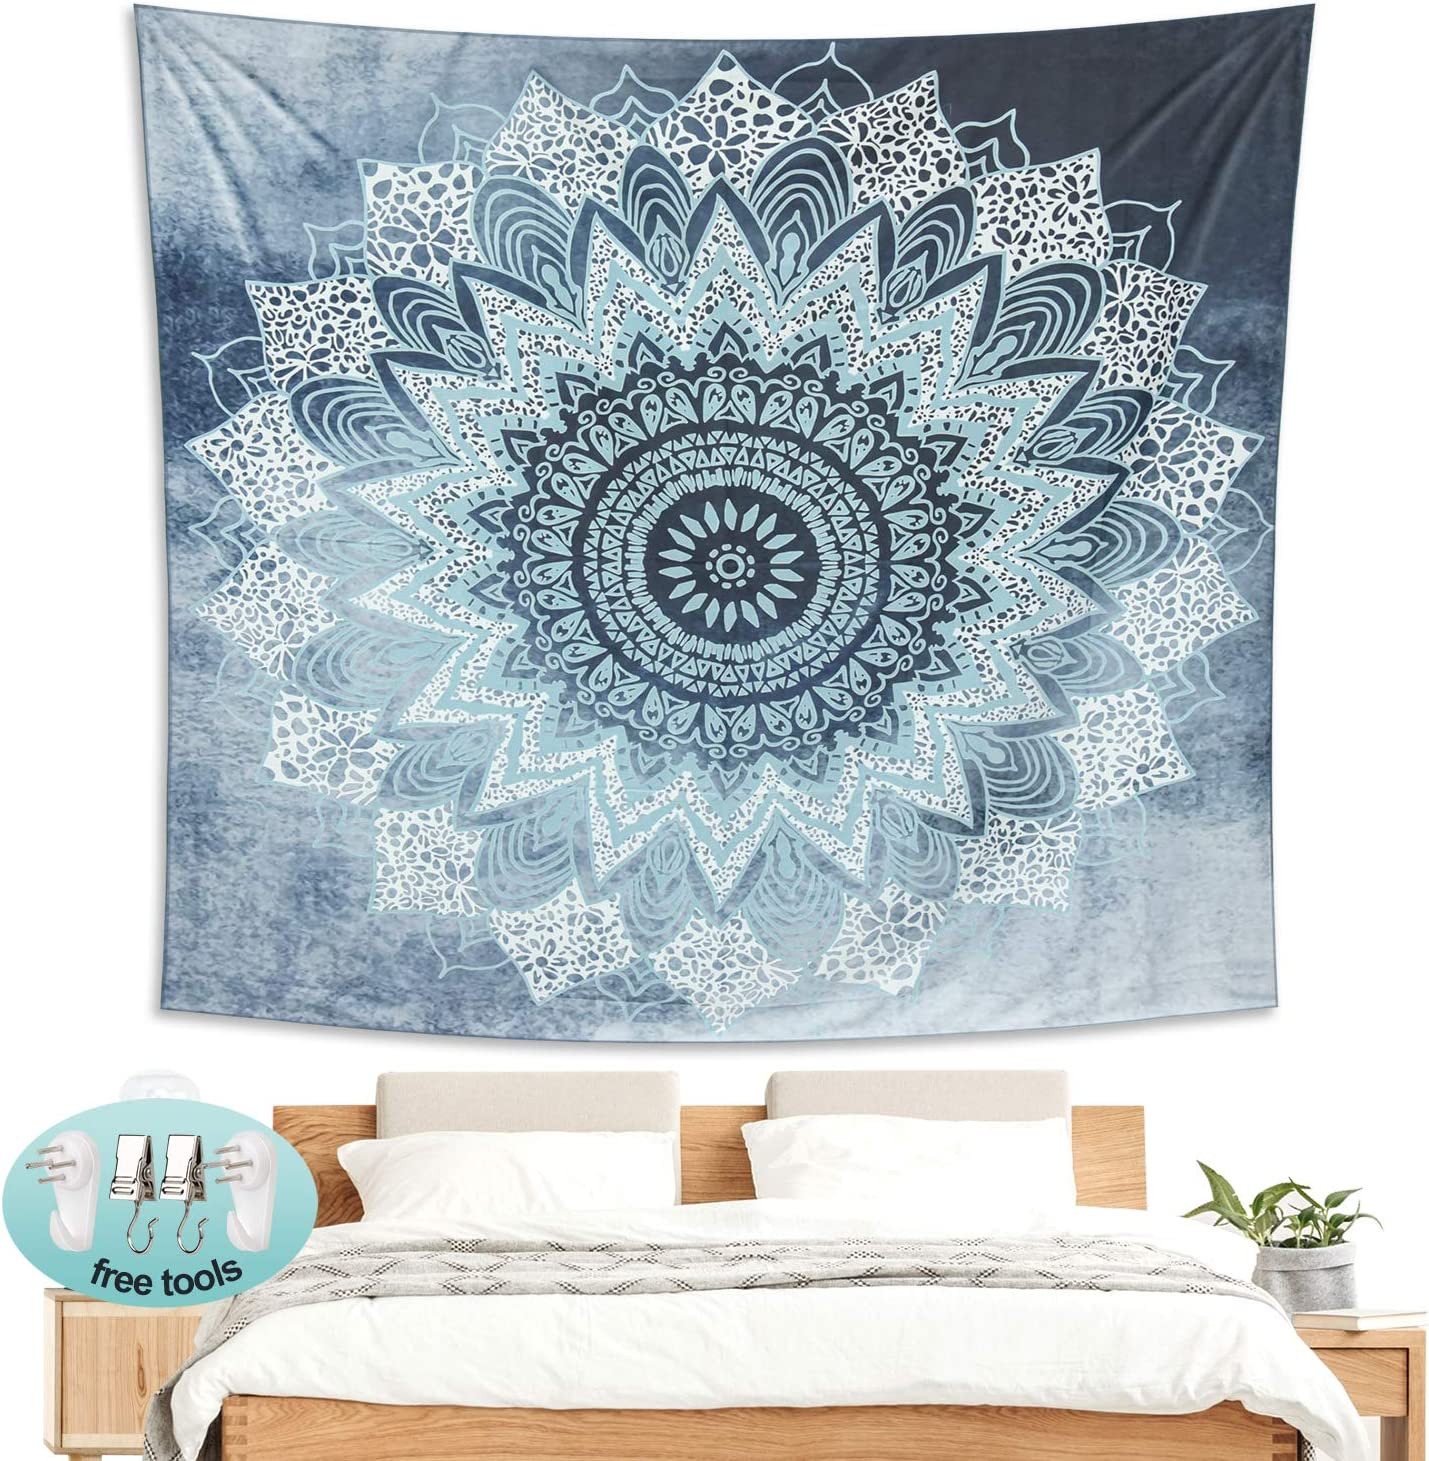 Magicalmai Tapestry Wall Hanging, Indian Mandala Wall Tapestry Hippie Bohemian Tapestries Wall Art Home Decorations for Living Room Bedroom Dorm Decor Grey 82.7x59.1 Inches